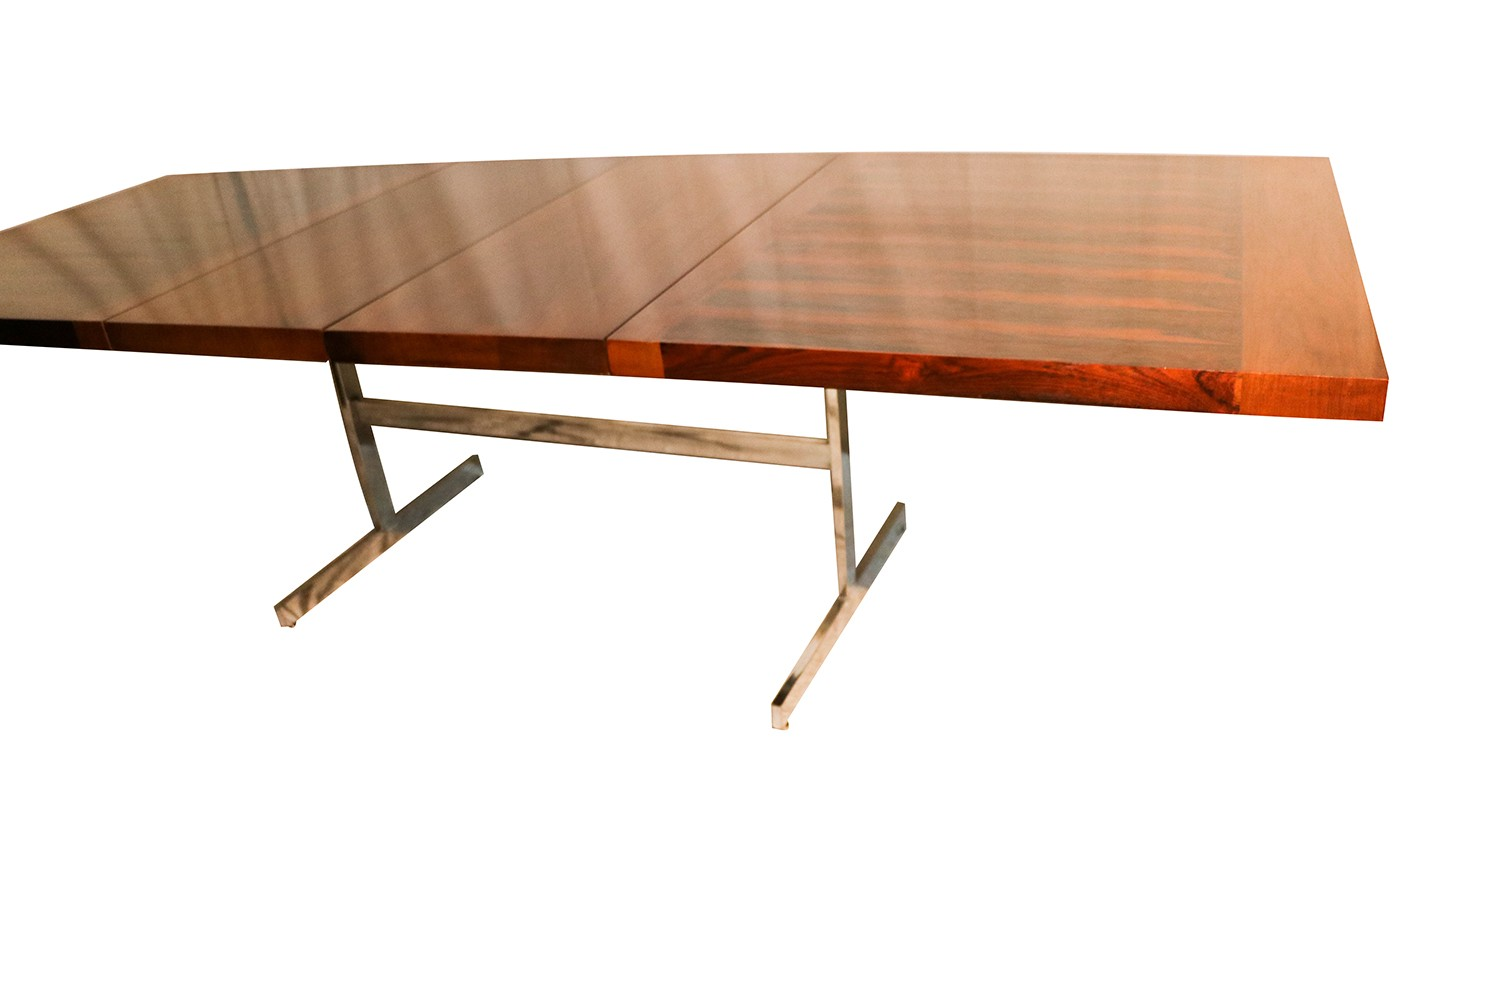 alfred hendrickx belgian mid century rosewood expandable dining table. Black Bedroom Furniture Sets. Home Design Ideas